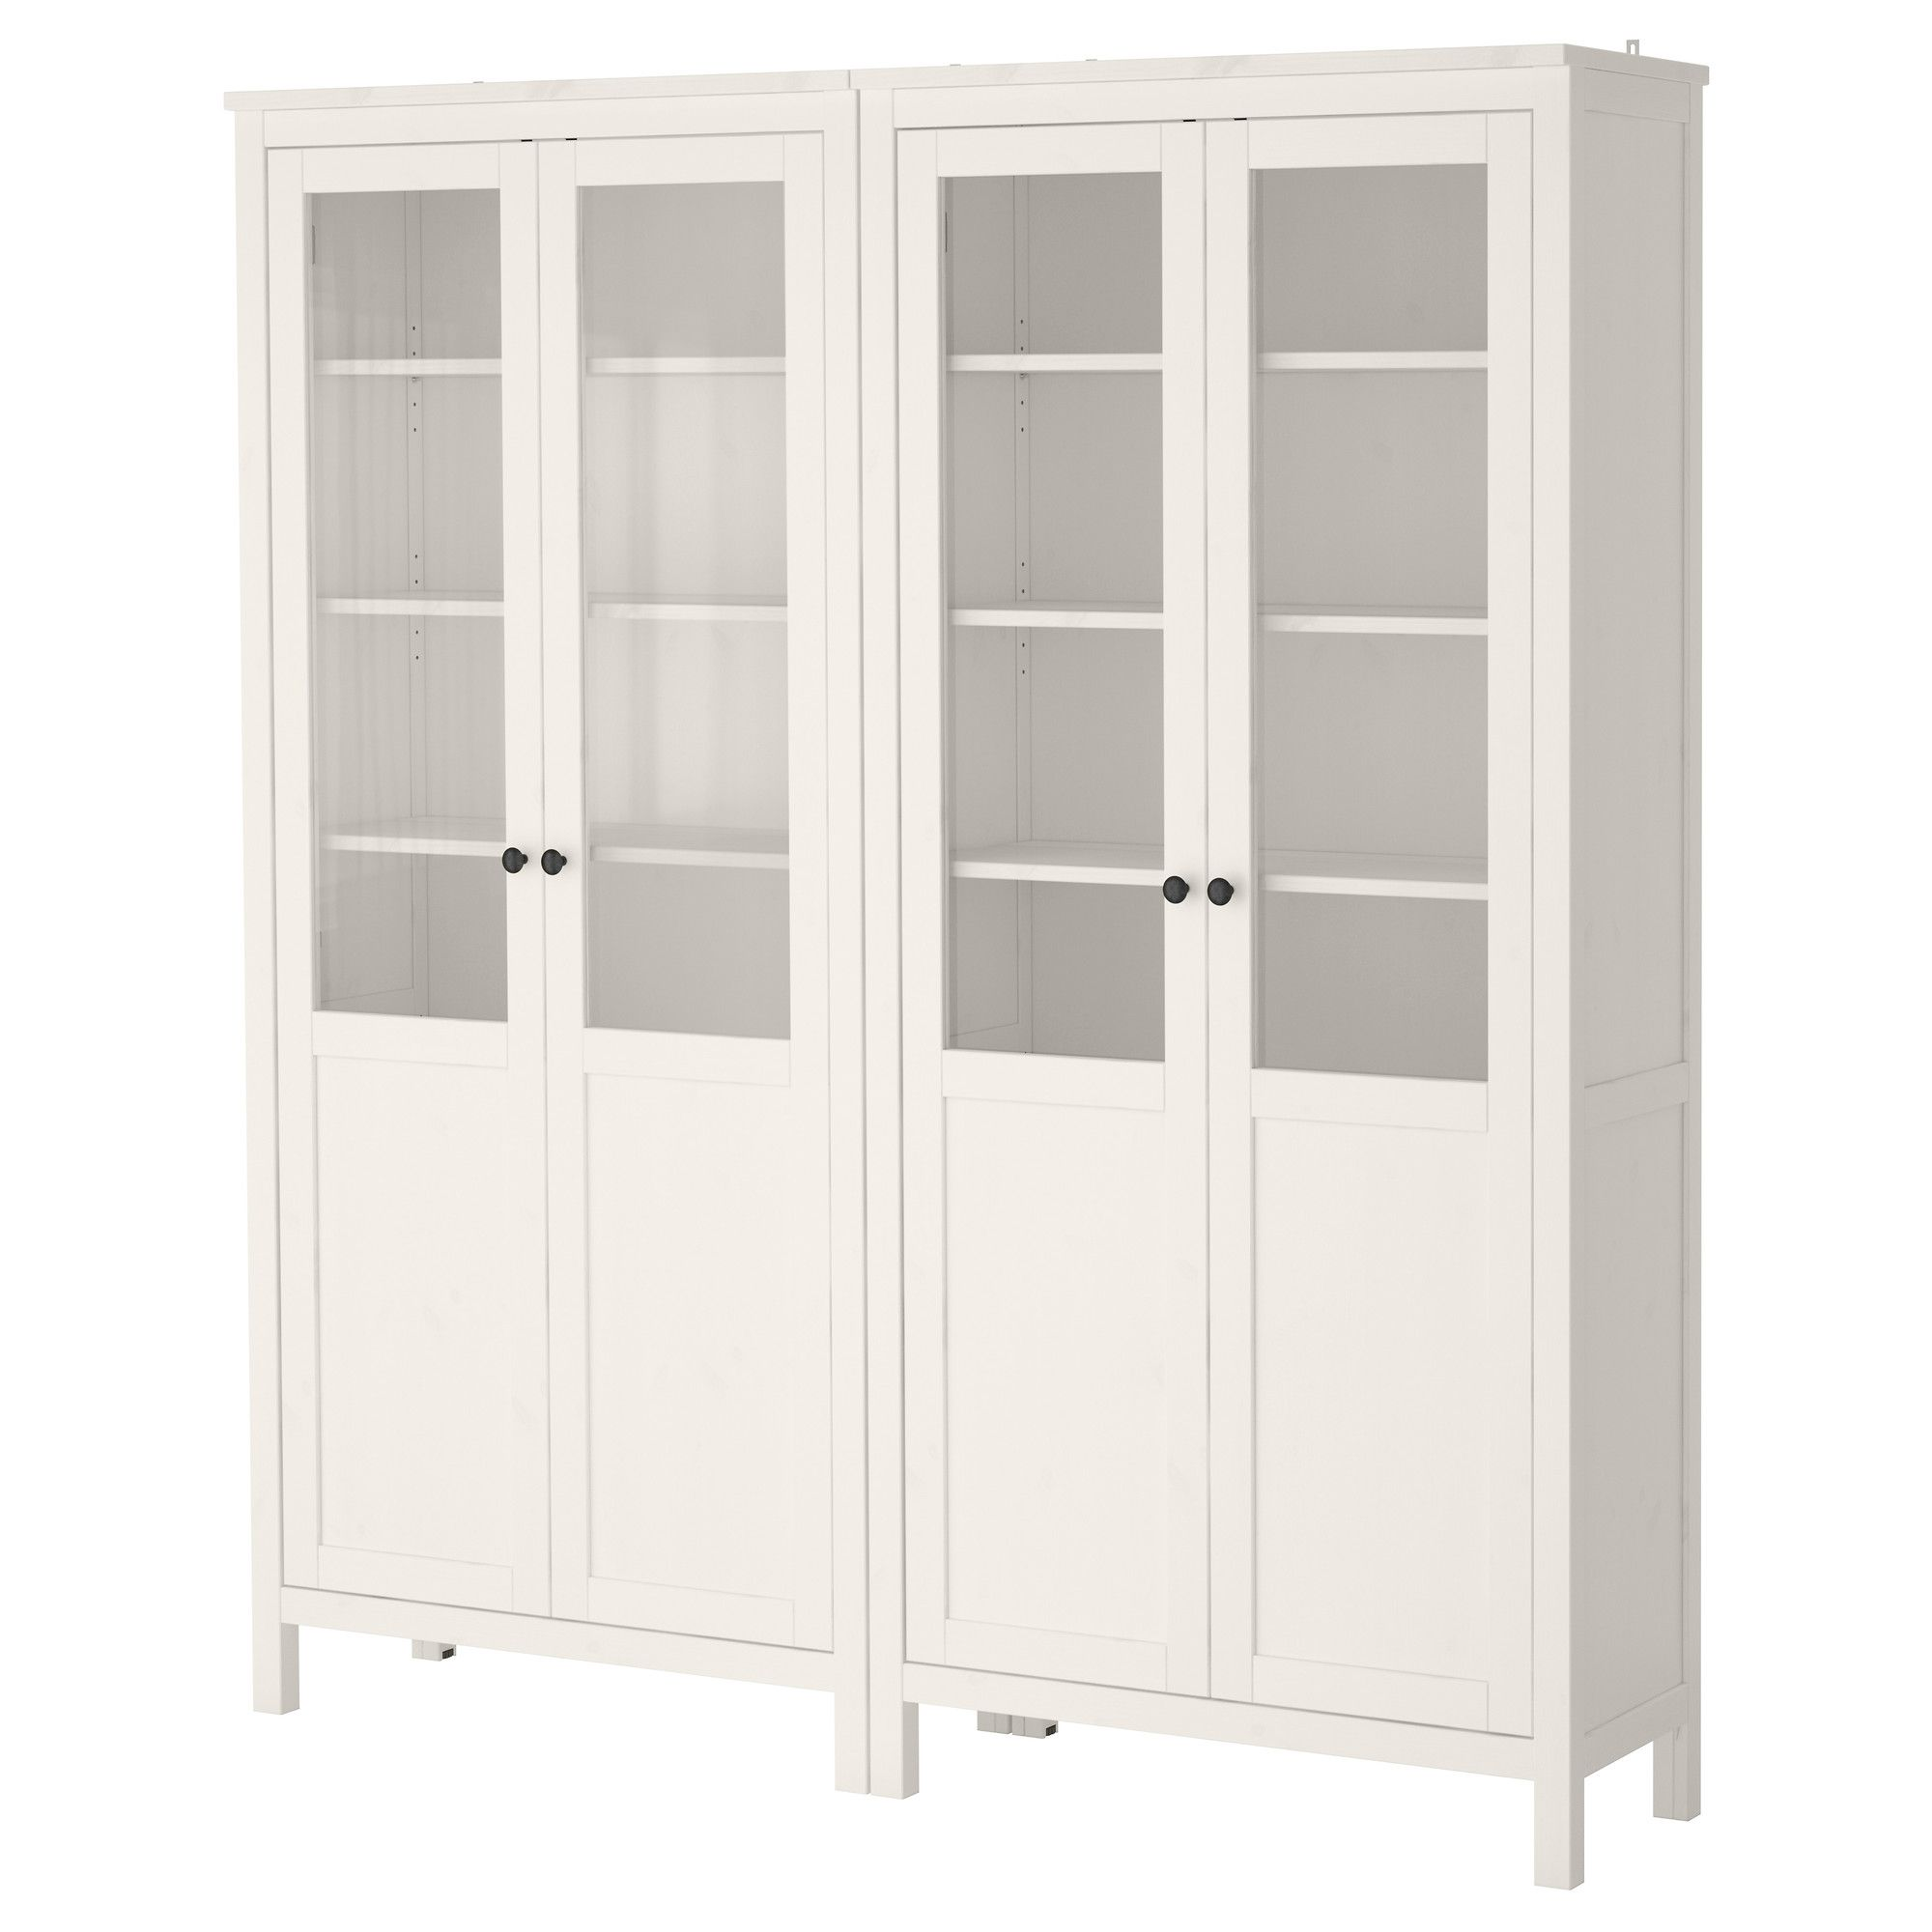 hemnes storage combination w glass doors white stain ikea for the house ikea kitchen. Black Bedroom Furniture Sets. Home Design Ideas